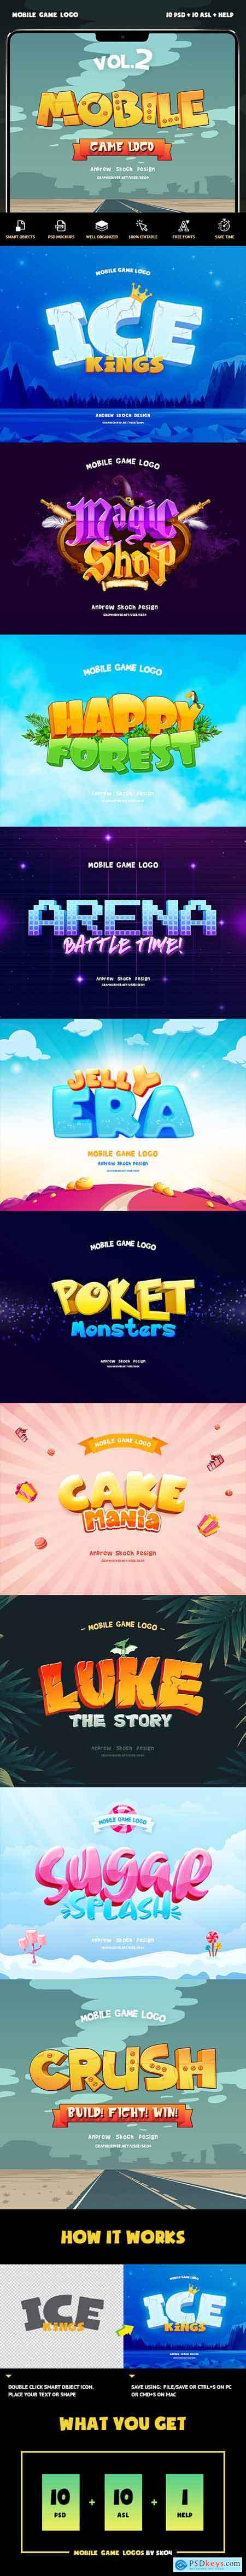 Mobile Game Text Effects vol 2 23439241